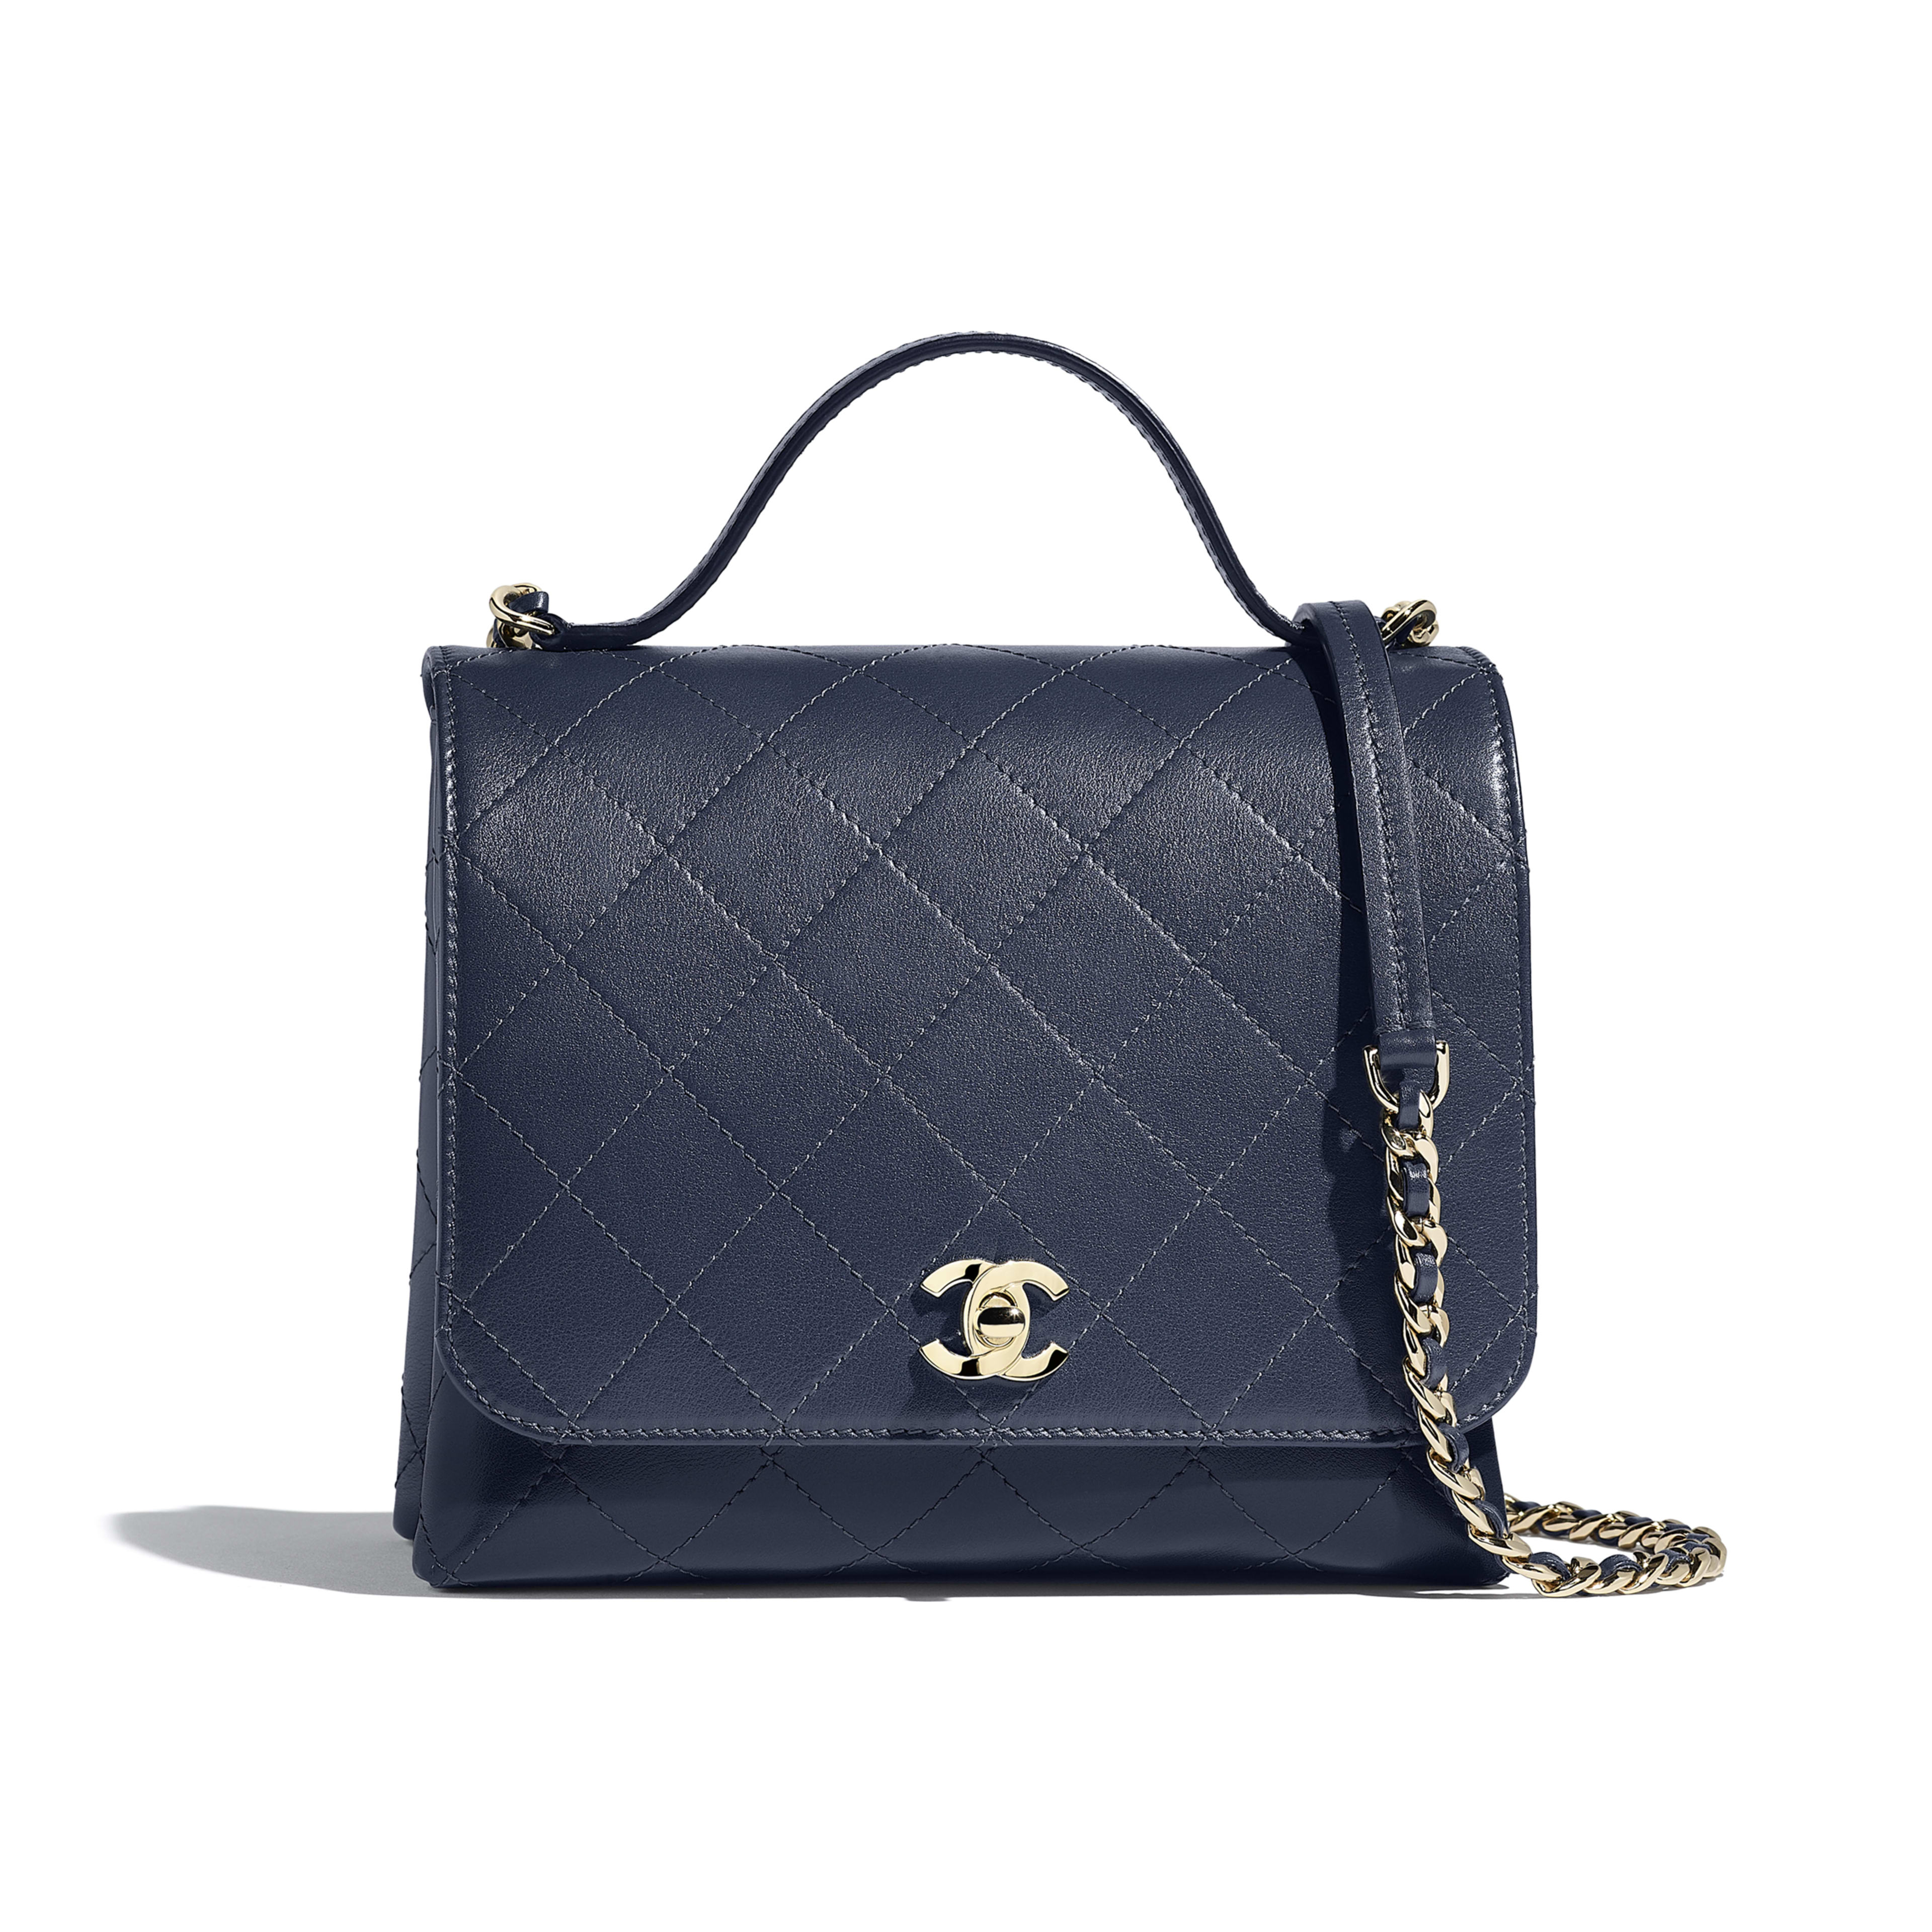 Flap Bag with Top Handle - Navy Blue - Calfskin & Gold-Tone Metal - Default view - see full sized version